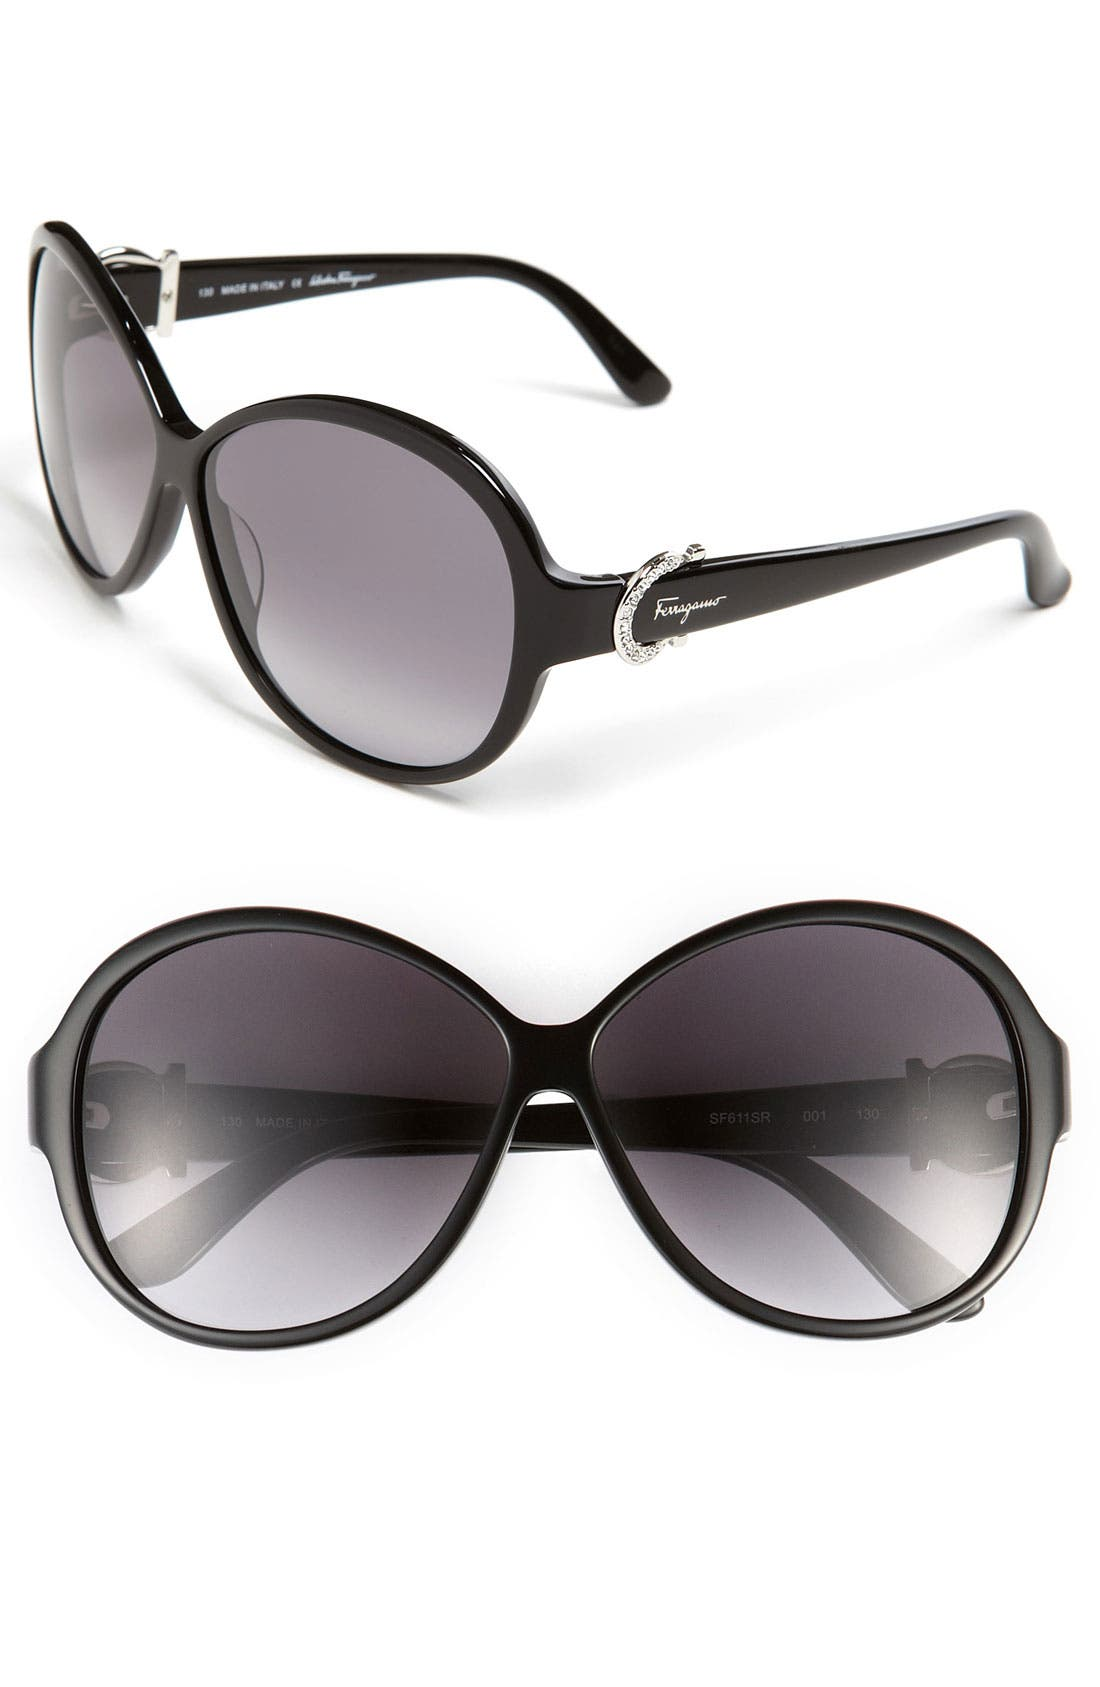 Main Image - Salvatore Ferragamo 59mm Classic Sunglasses